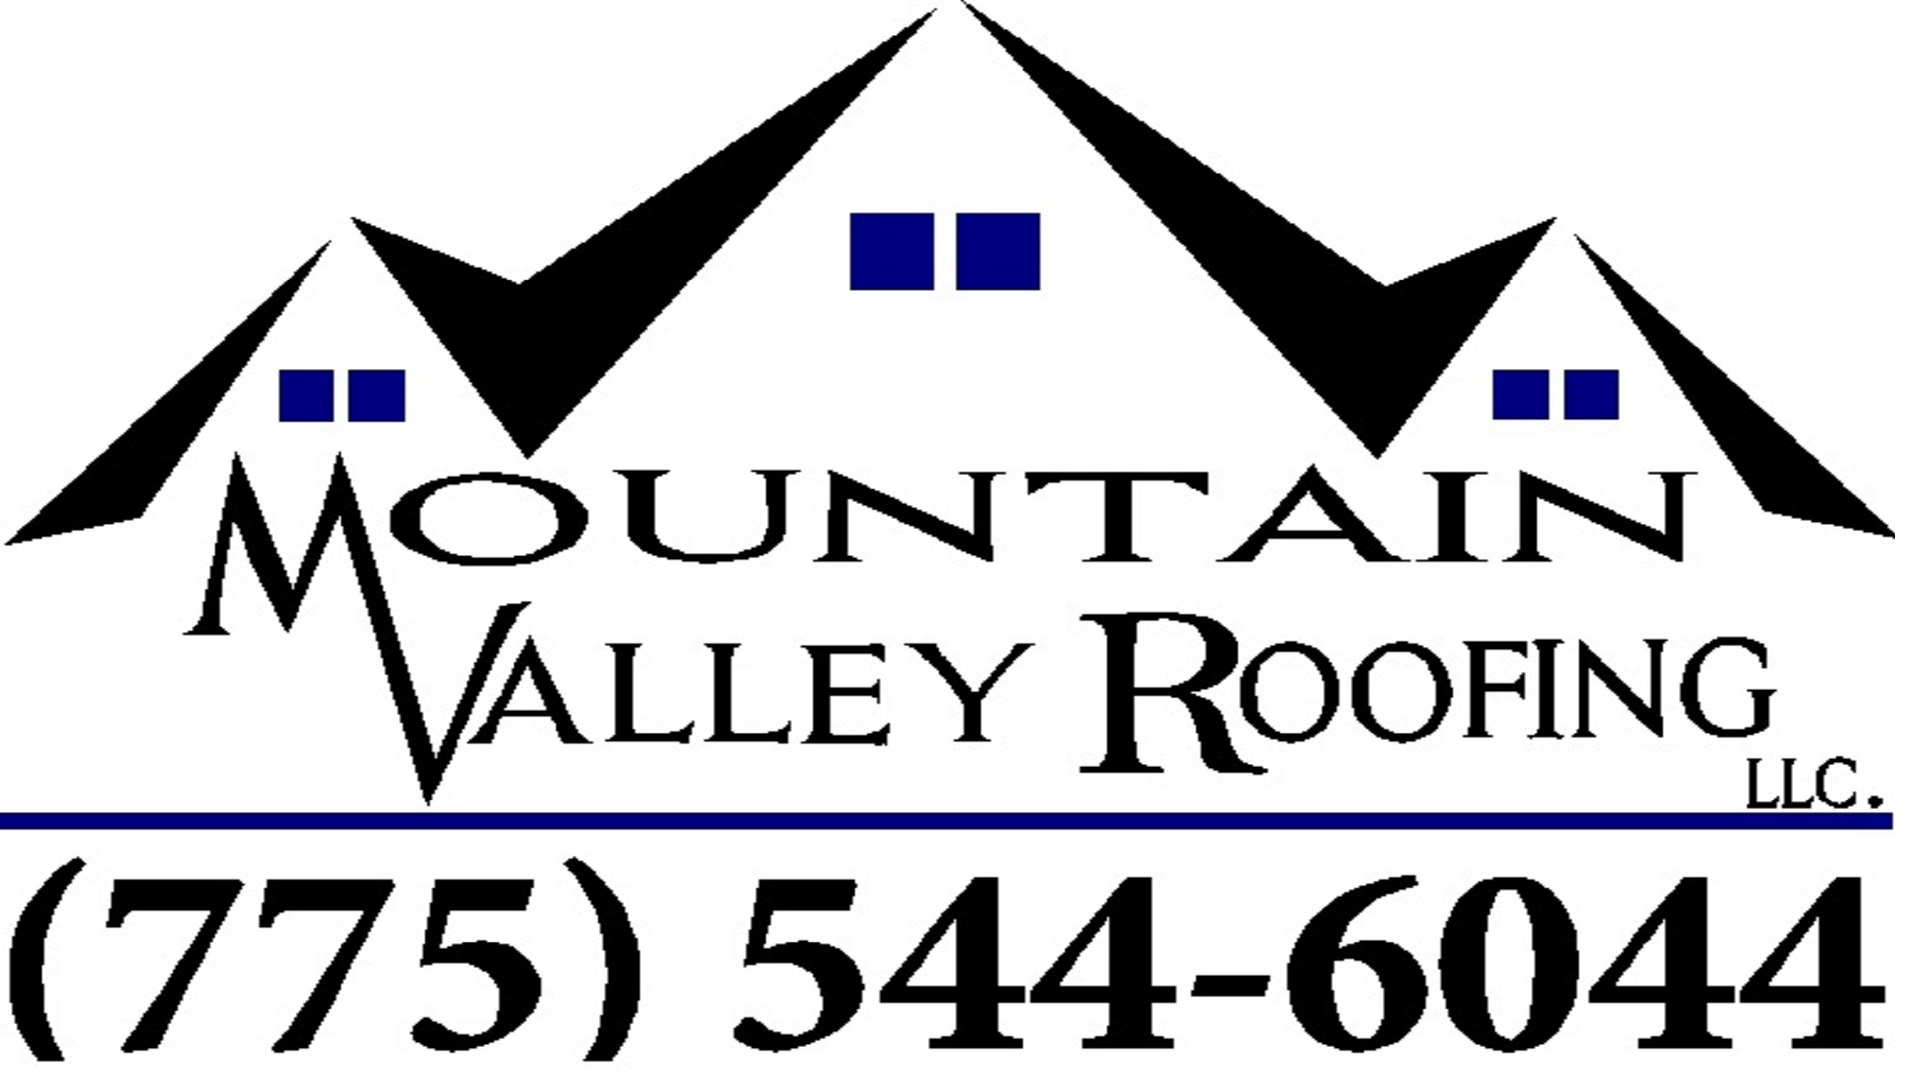 Mountain Valley Roofing logo